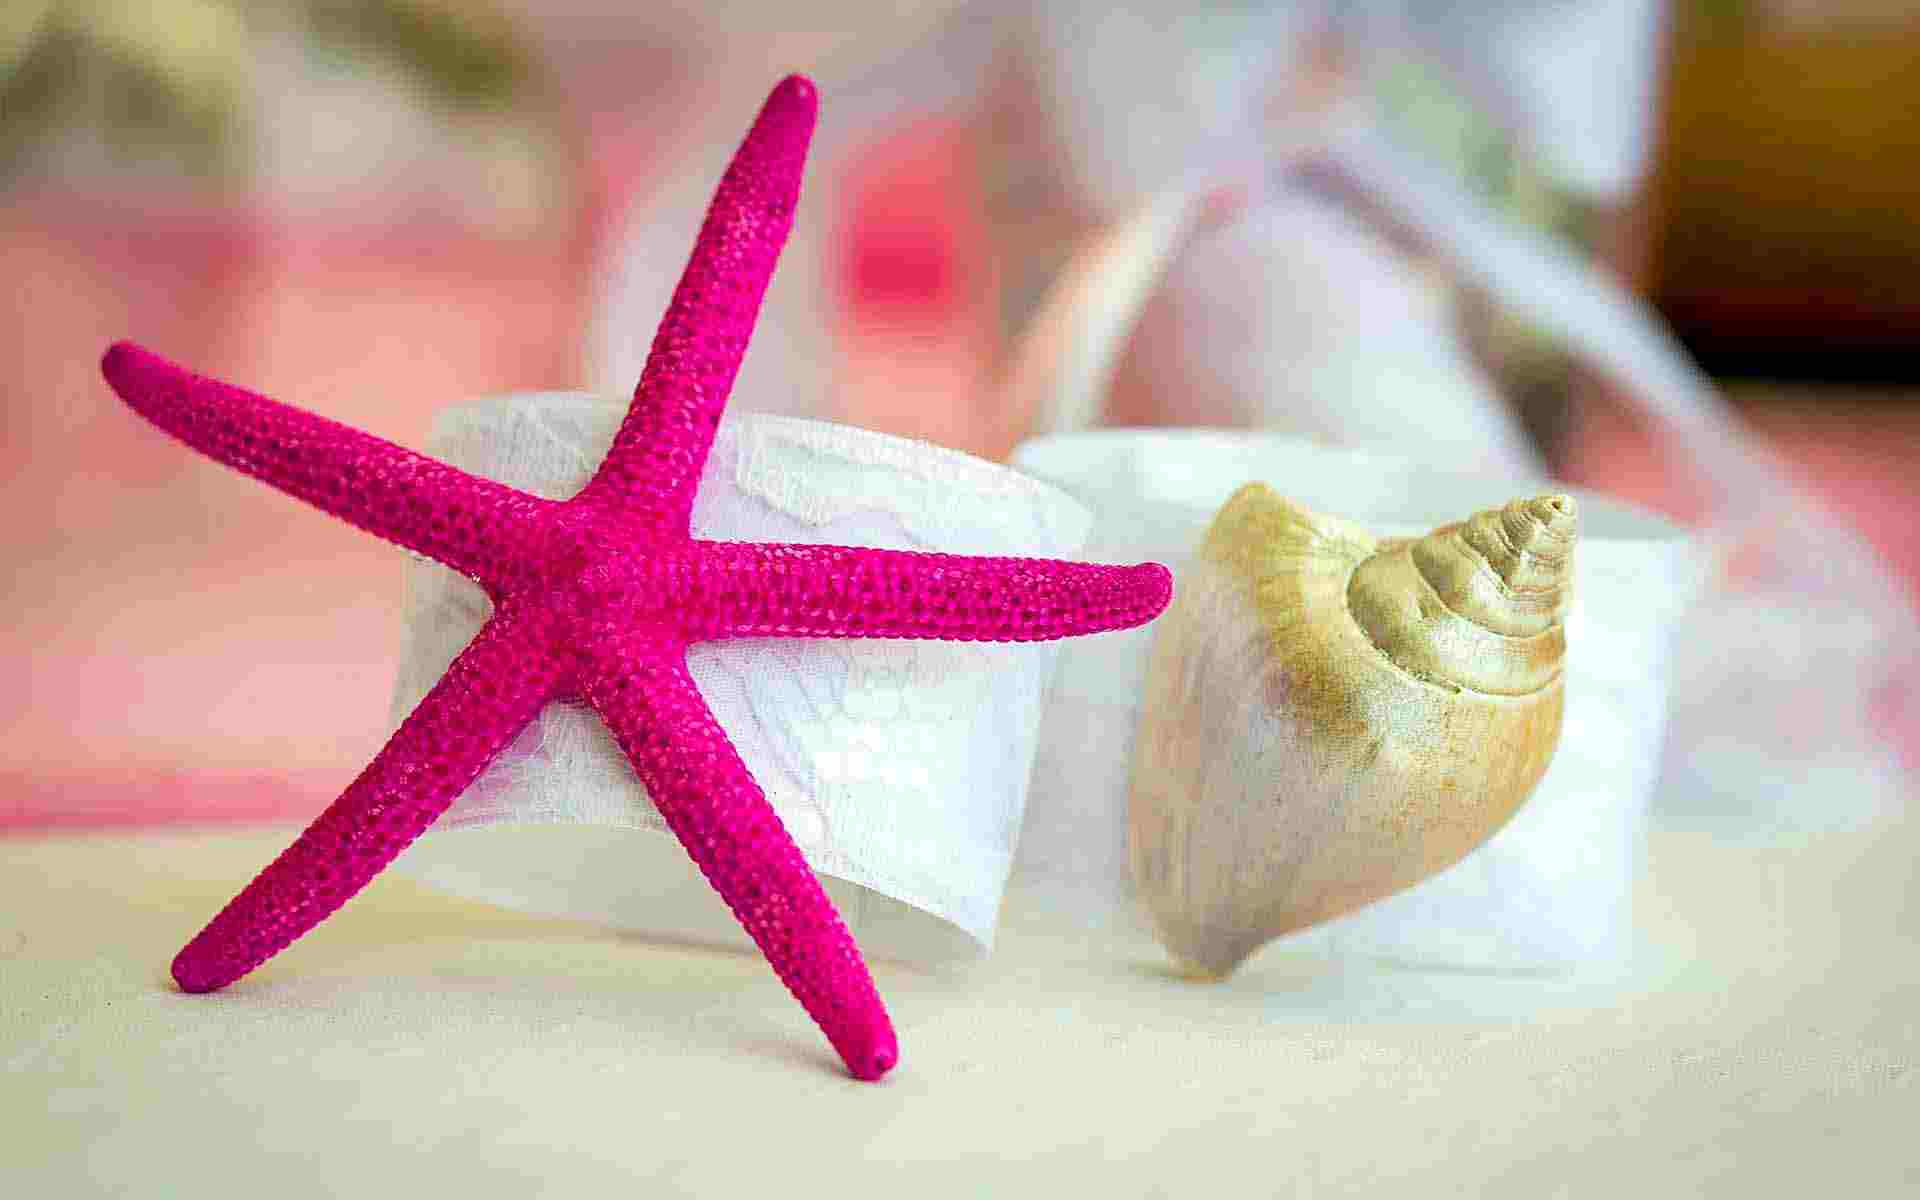 Bonding-Pads-On-The-Sea-Shells-And-Starfish-by-Diamond-Events-christening